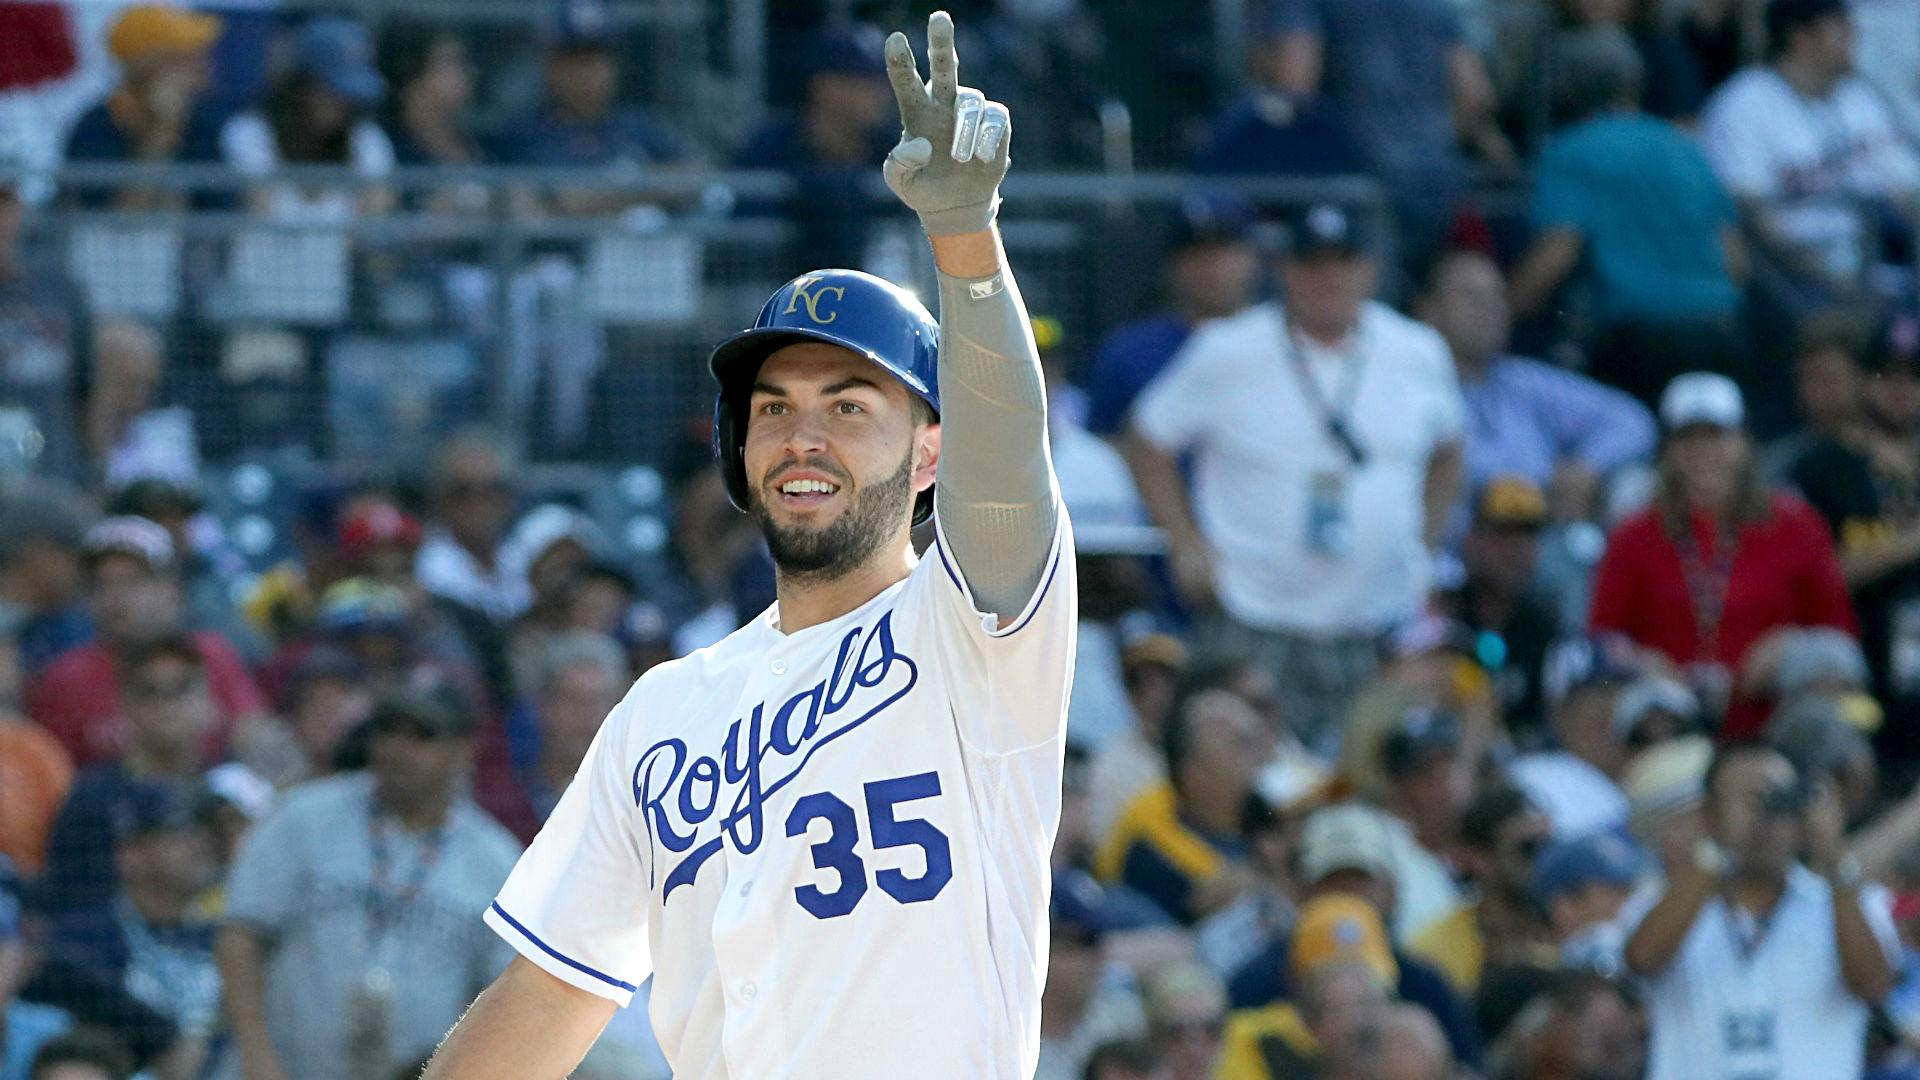 MLB Free Agent News Eric Hosmer Agrees To 8 Year Deal With Padres